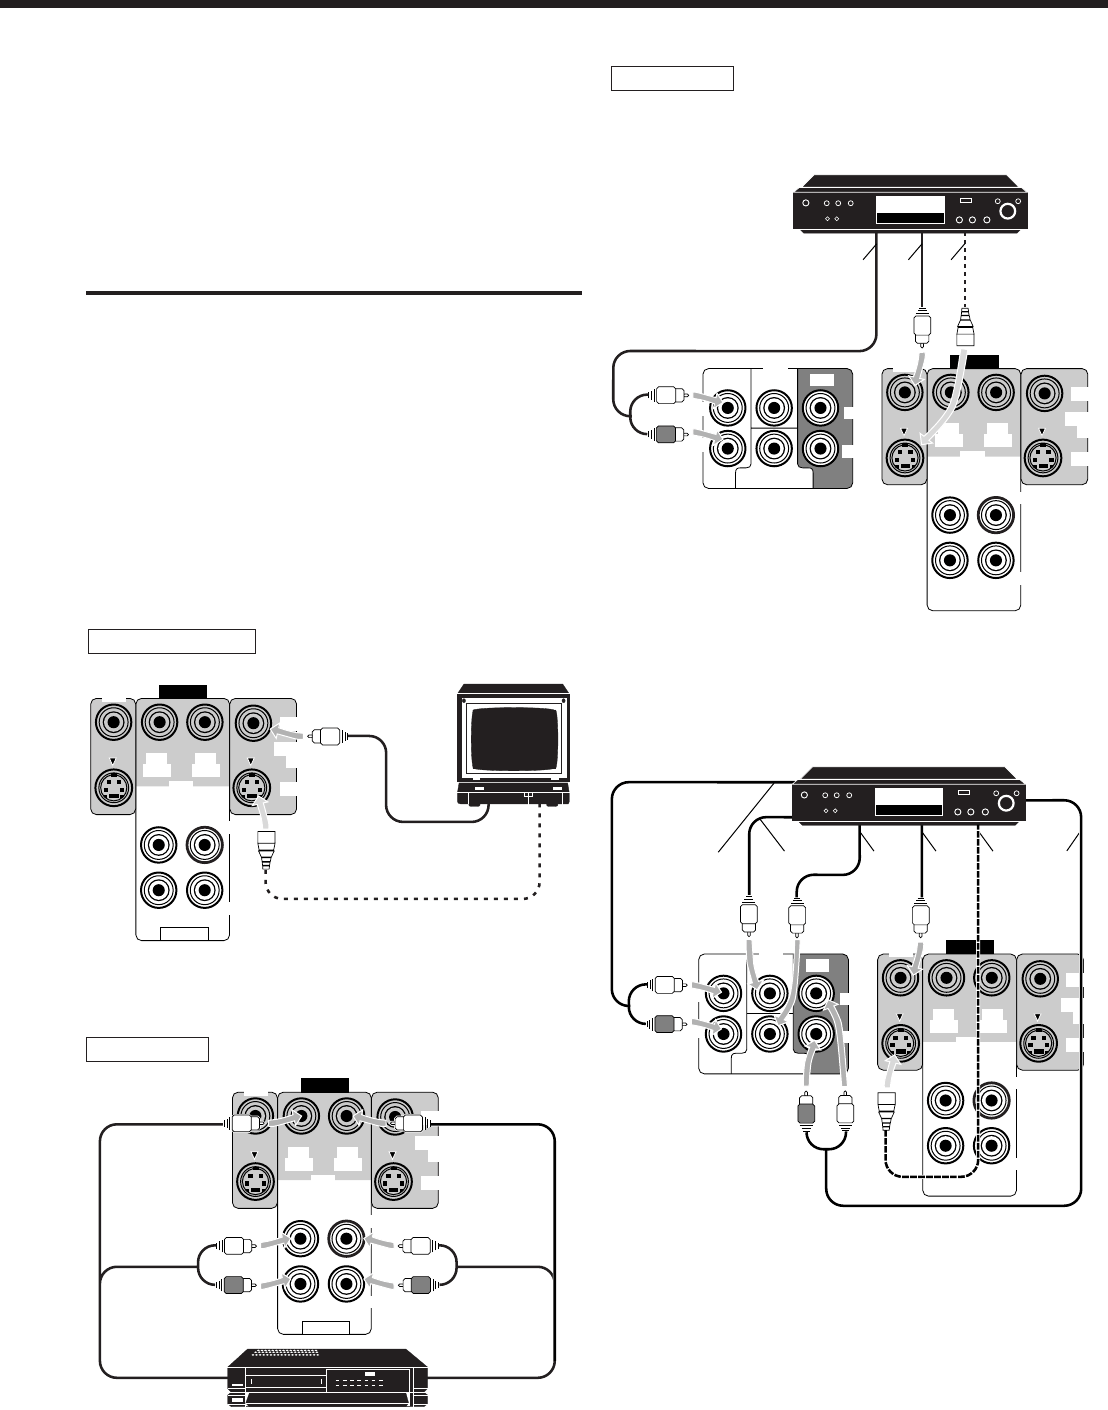 Page 8 of JVC Stereo System RX-668VBK User Guide